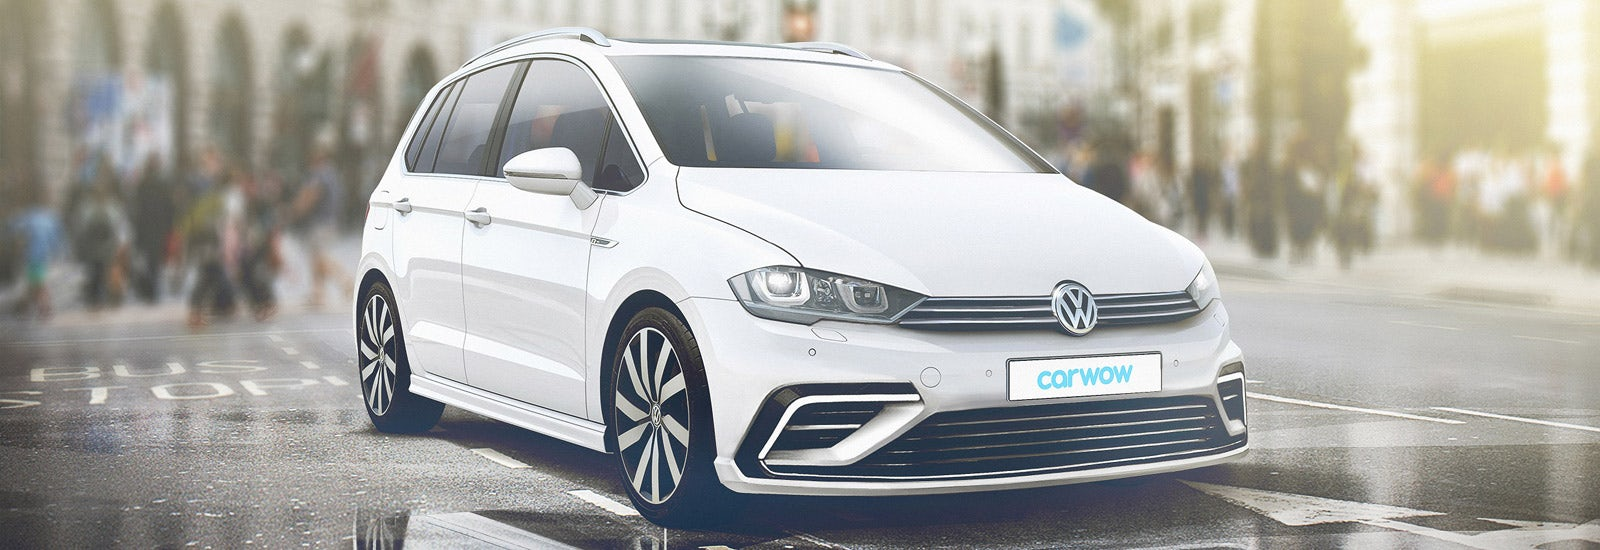 2019 New Vw Golf Sv Mk8 Render By Carwow